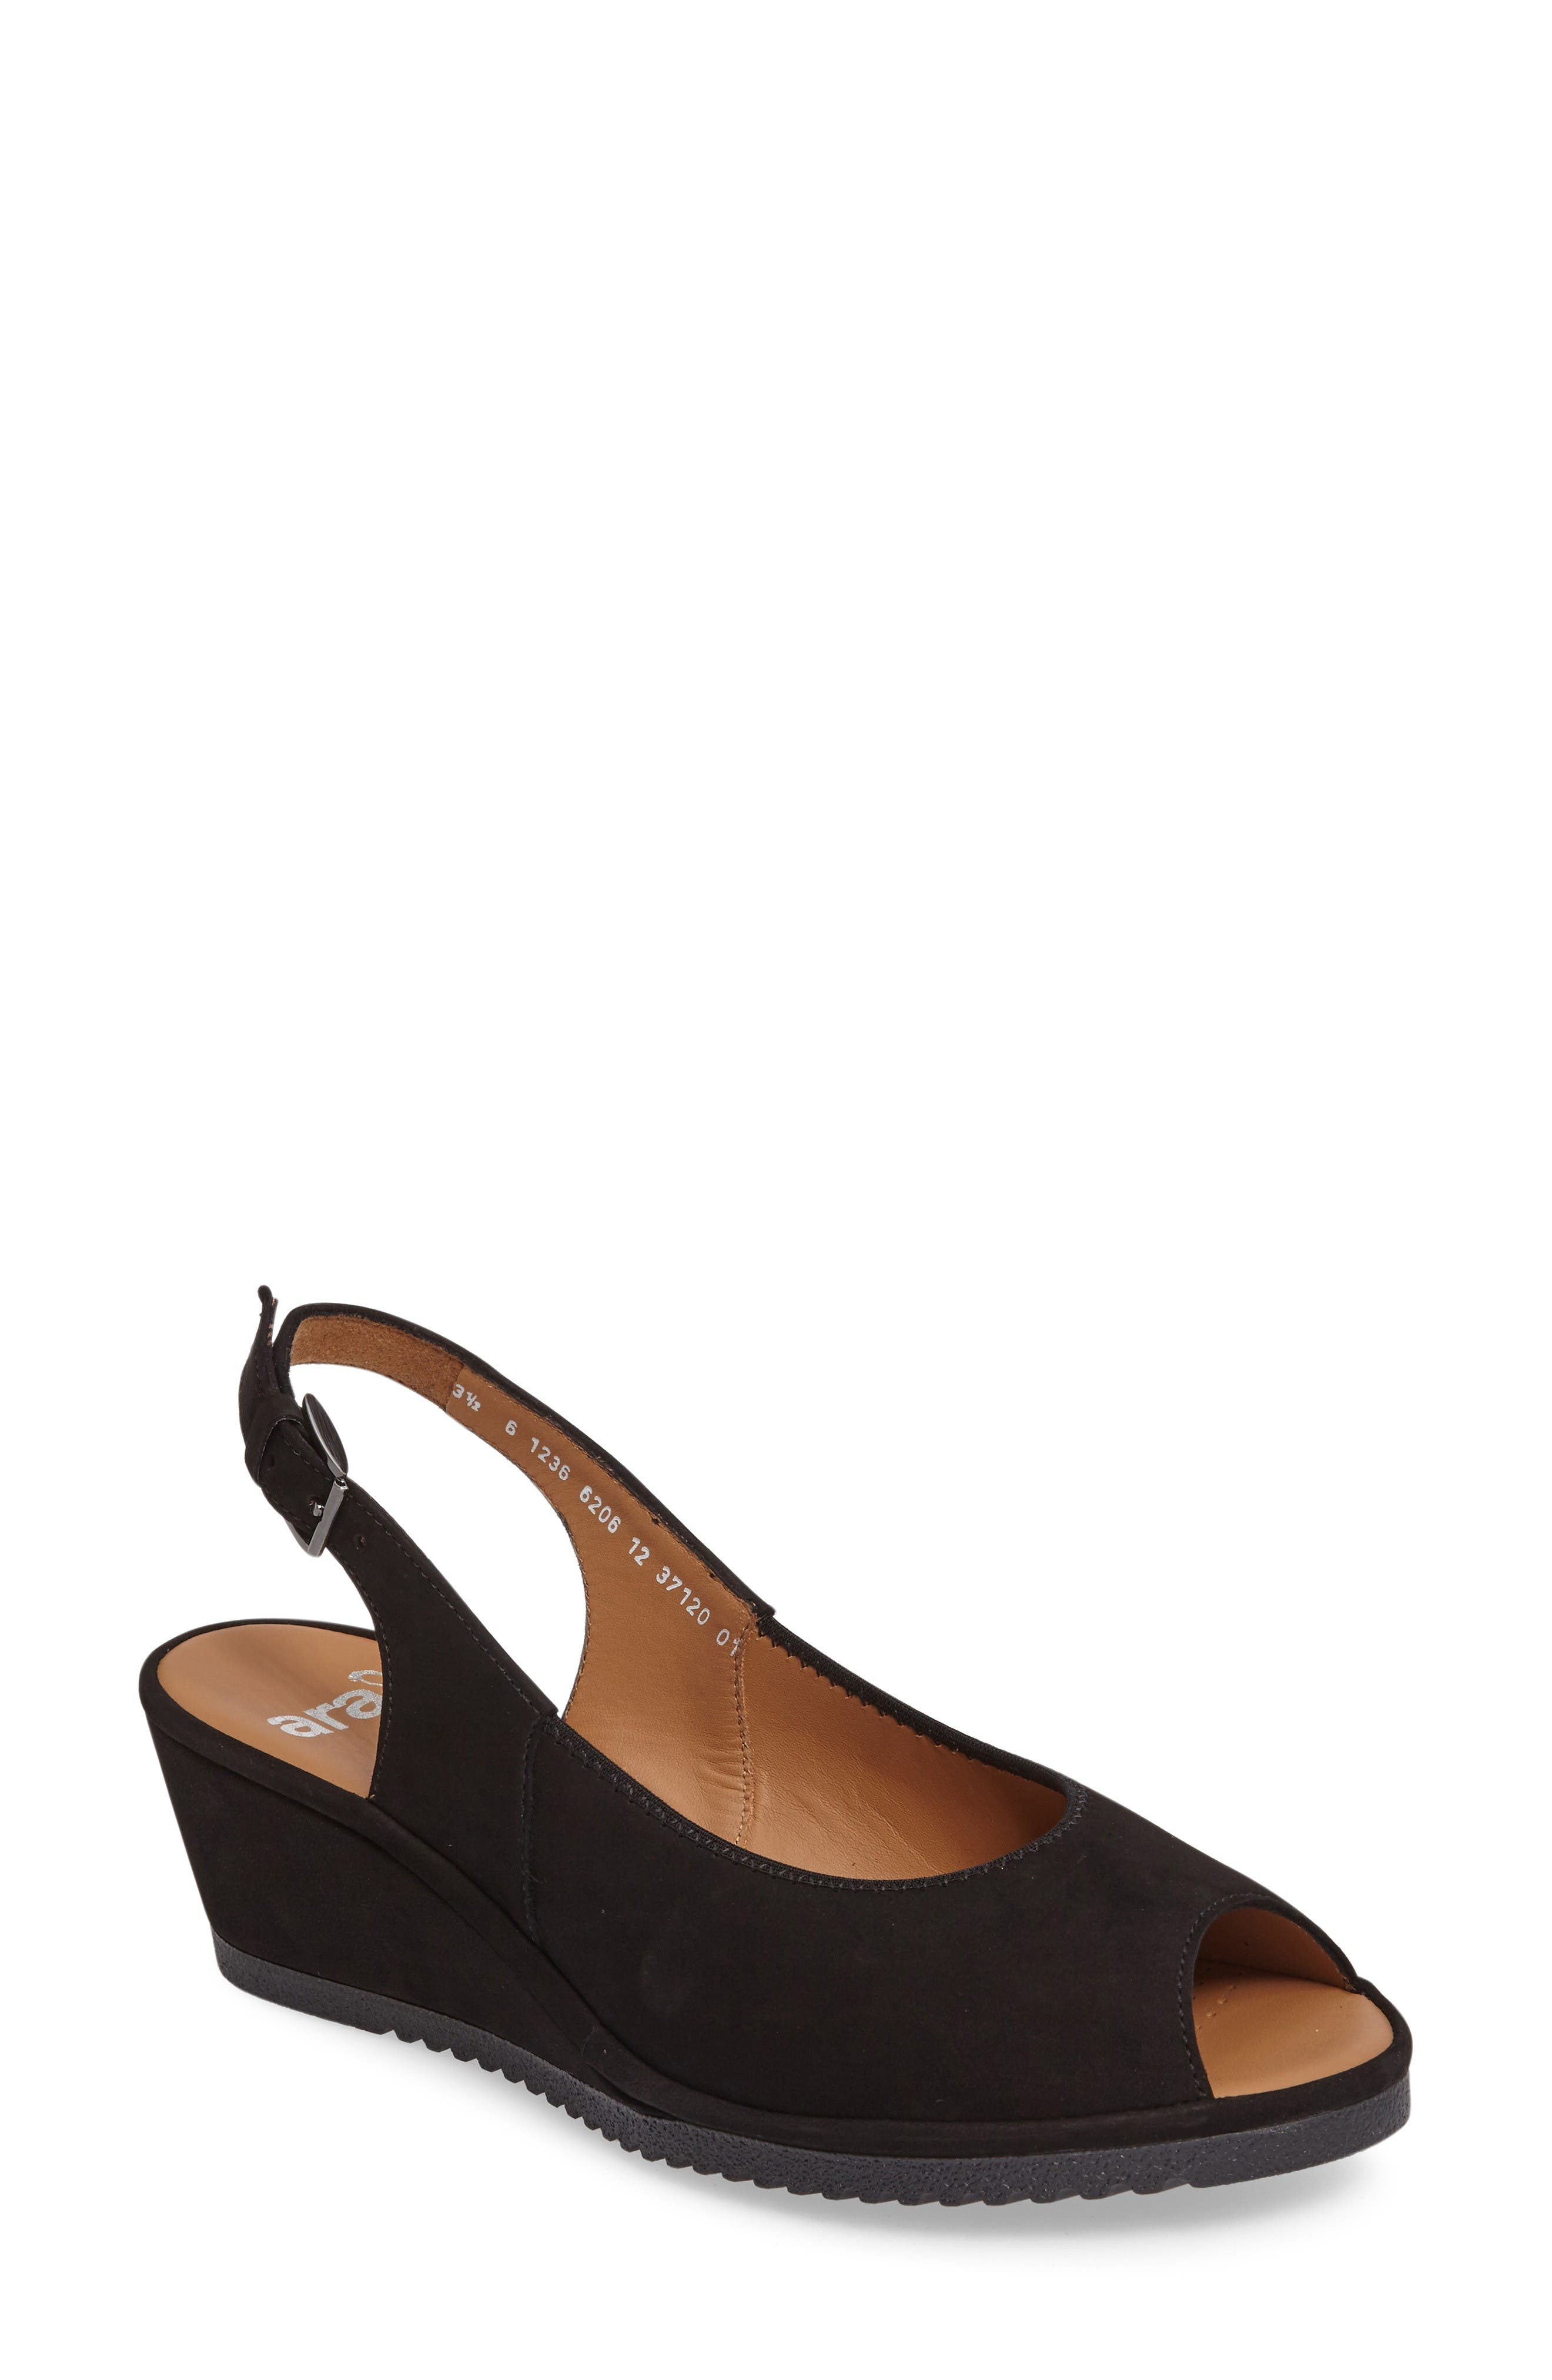 Colleen Sandal,                             Main thumbnail 1, color,                             Black